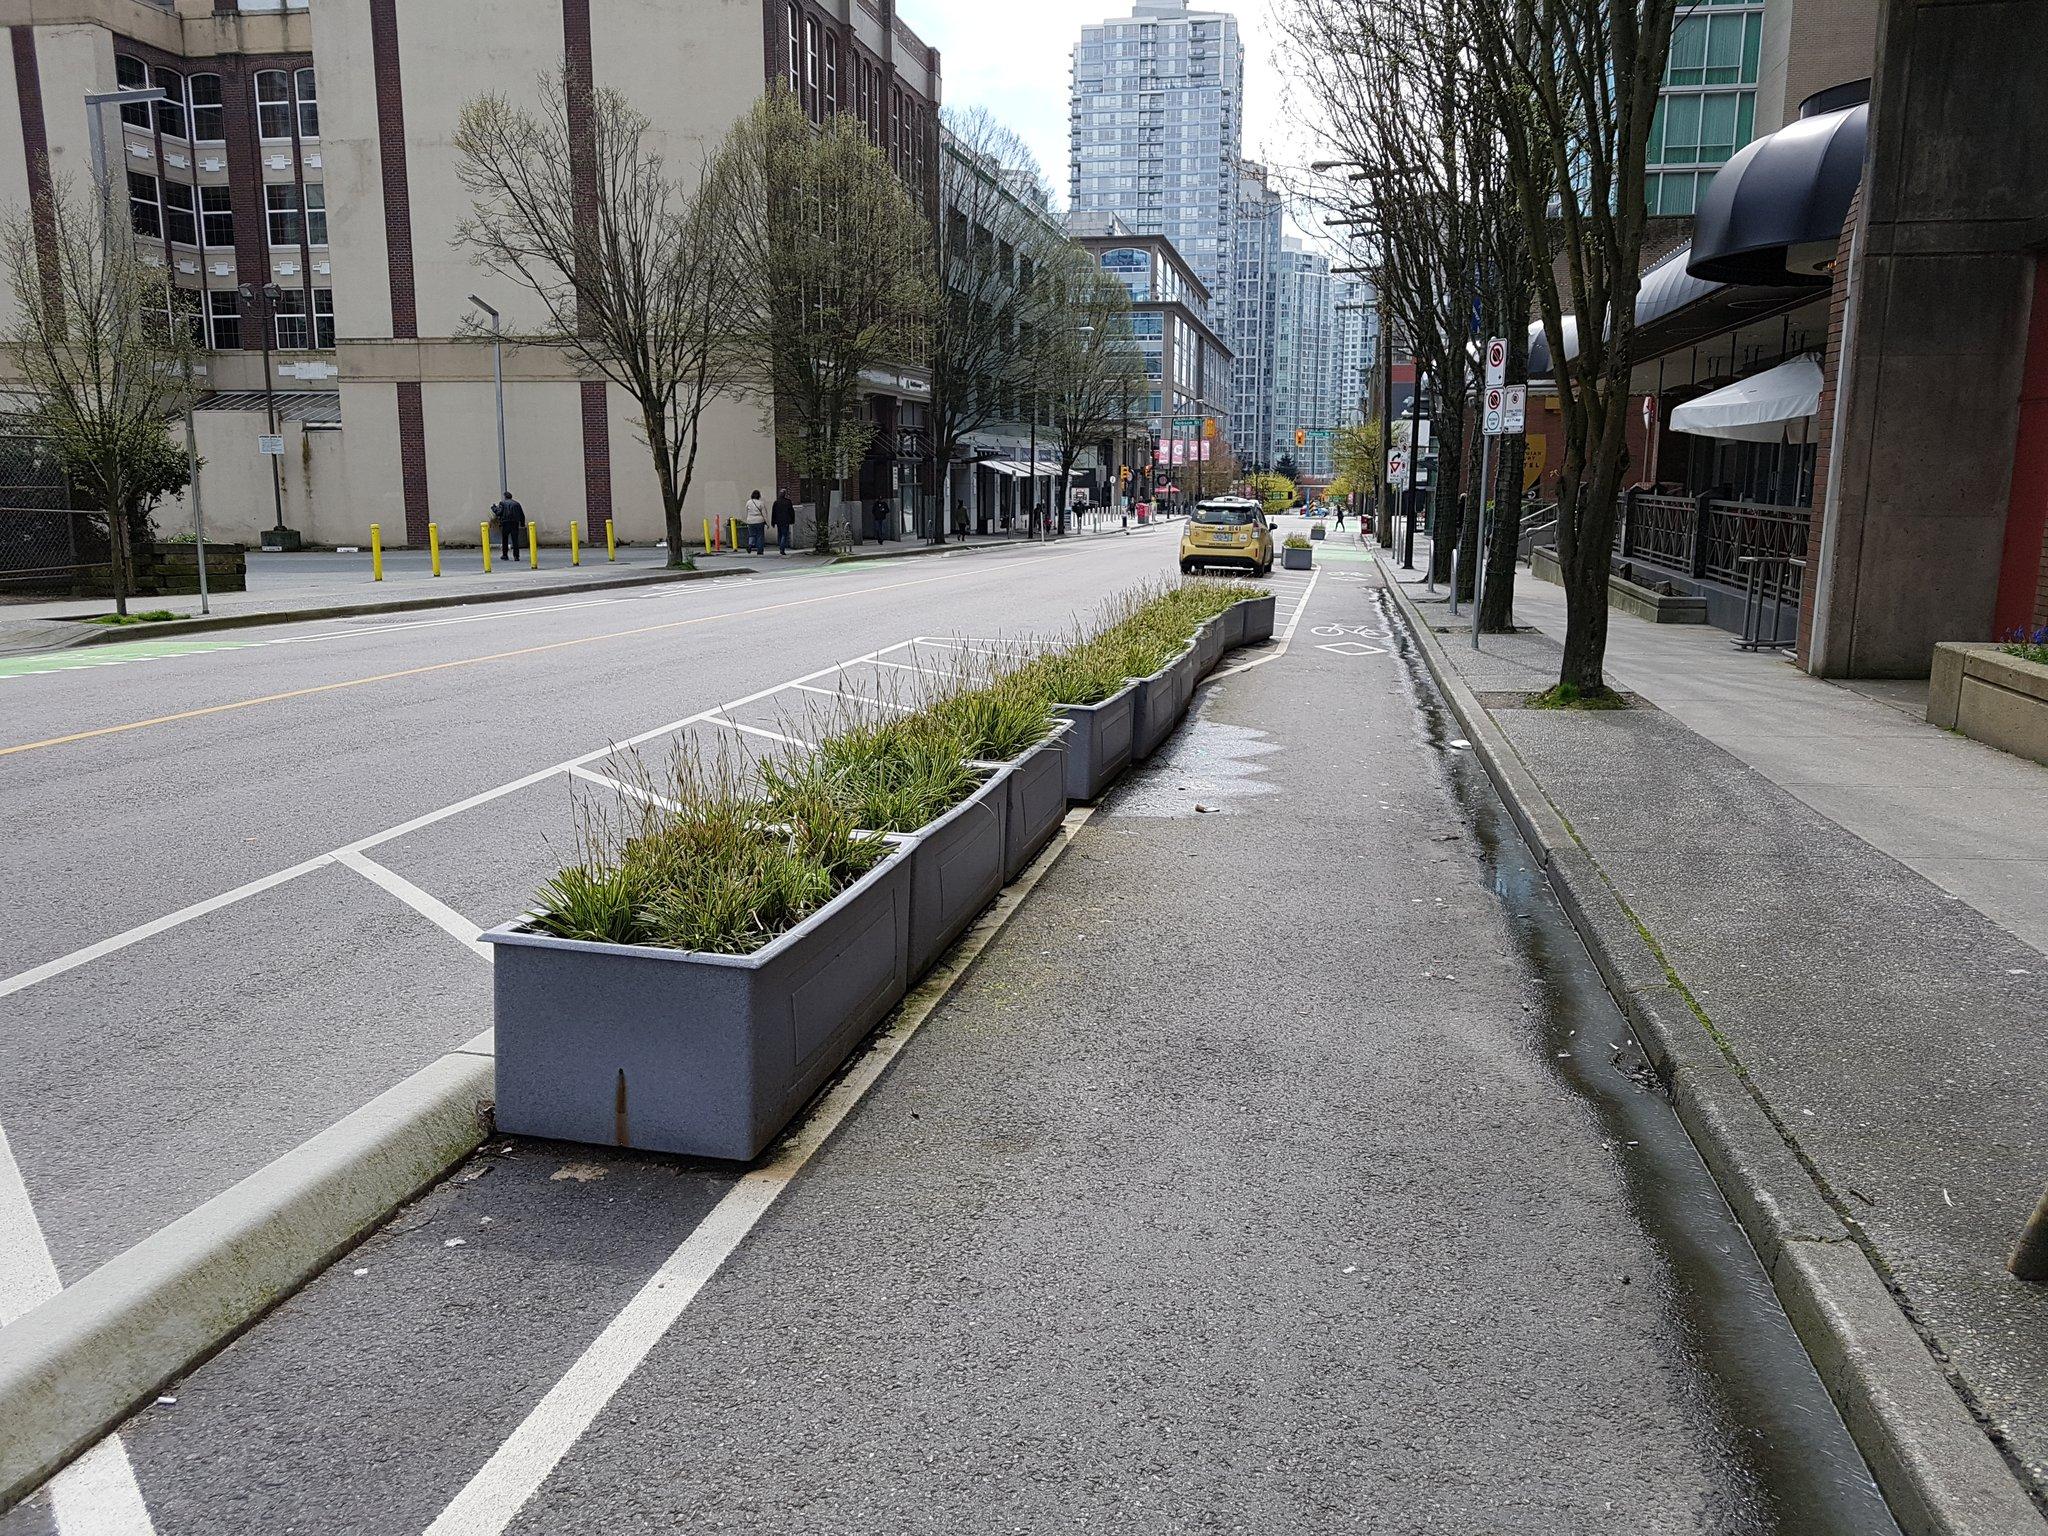 One of the newest protected bike lanes downtown on Beatty St. Were built quickly & cheaply for Mobi launch #yyjbike https://t.co/MvEBtk5l5D